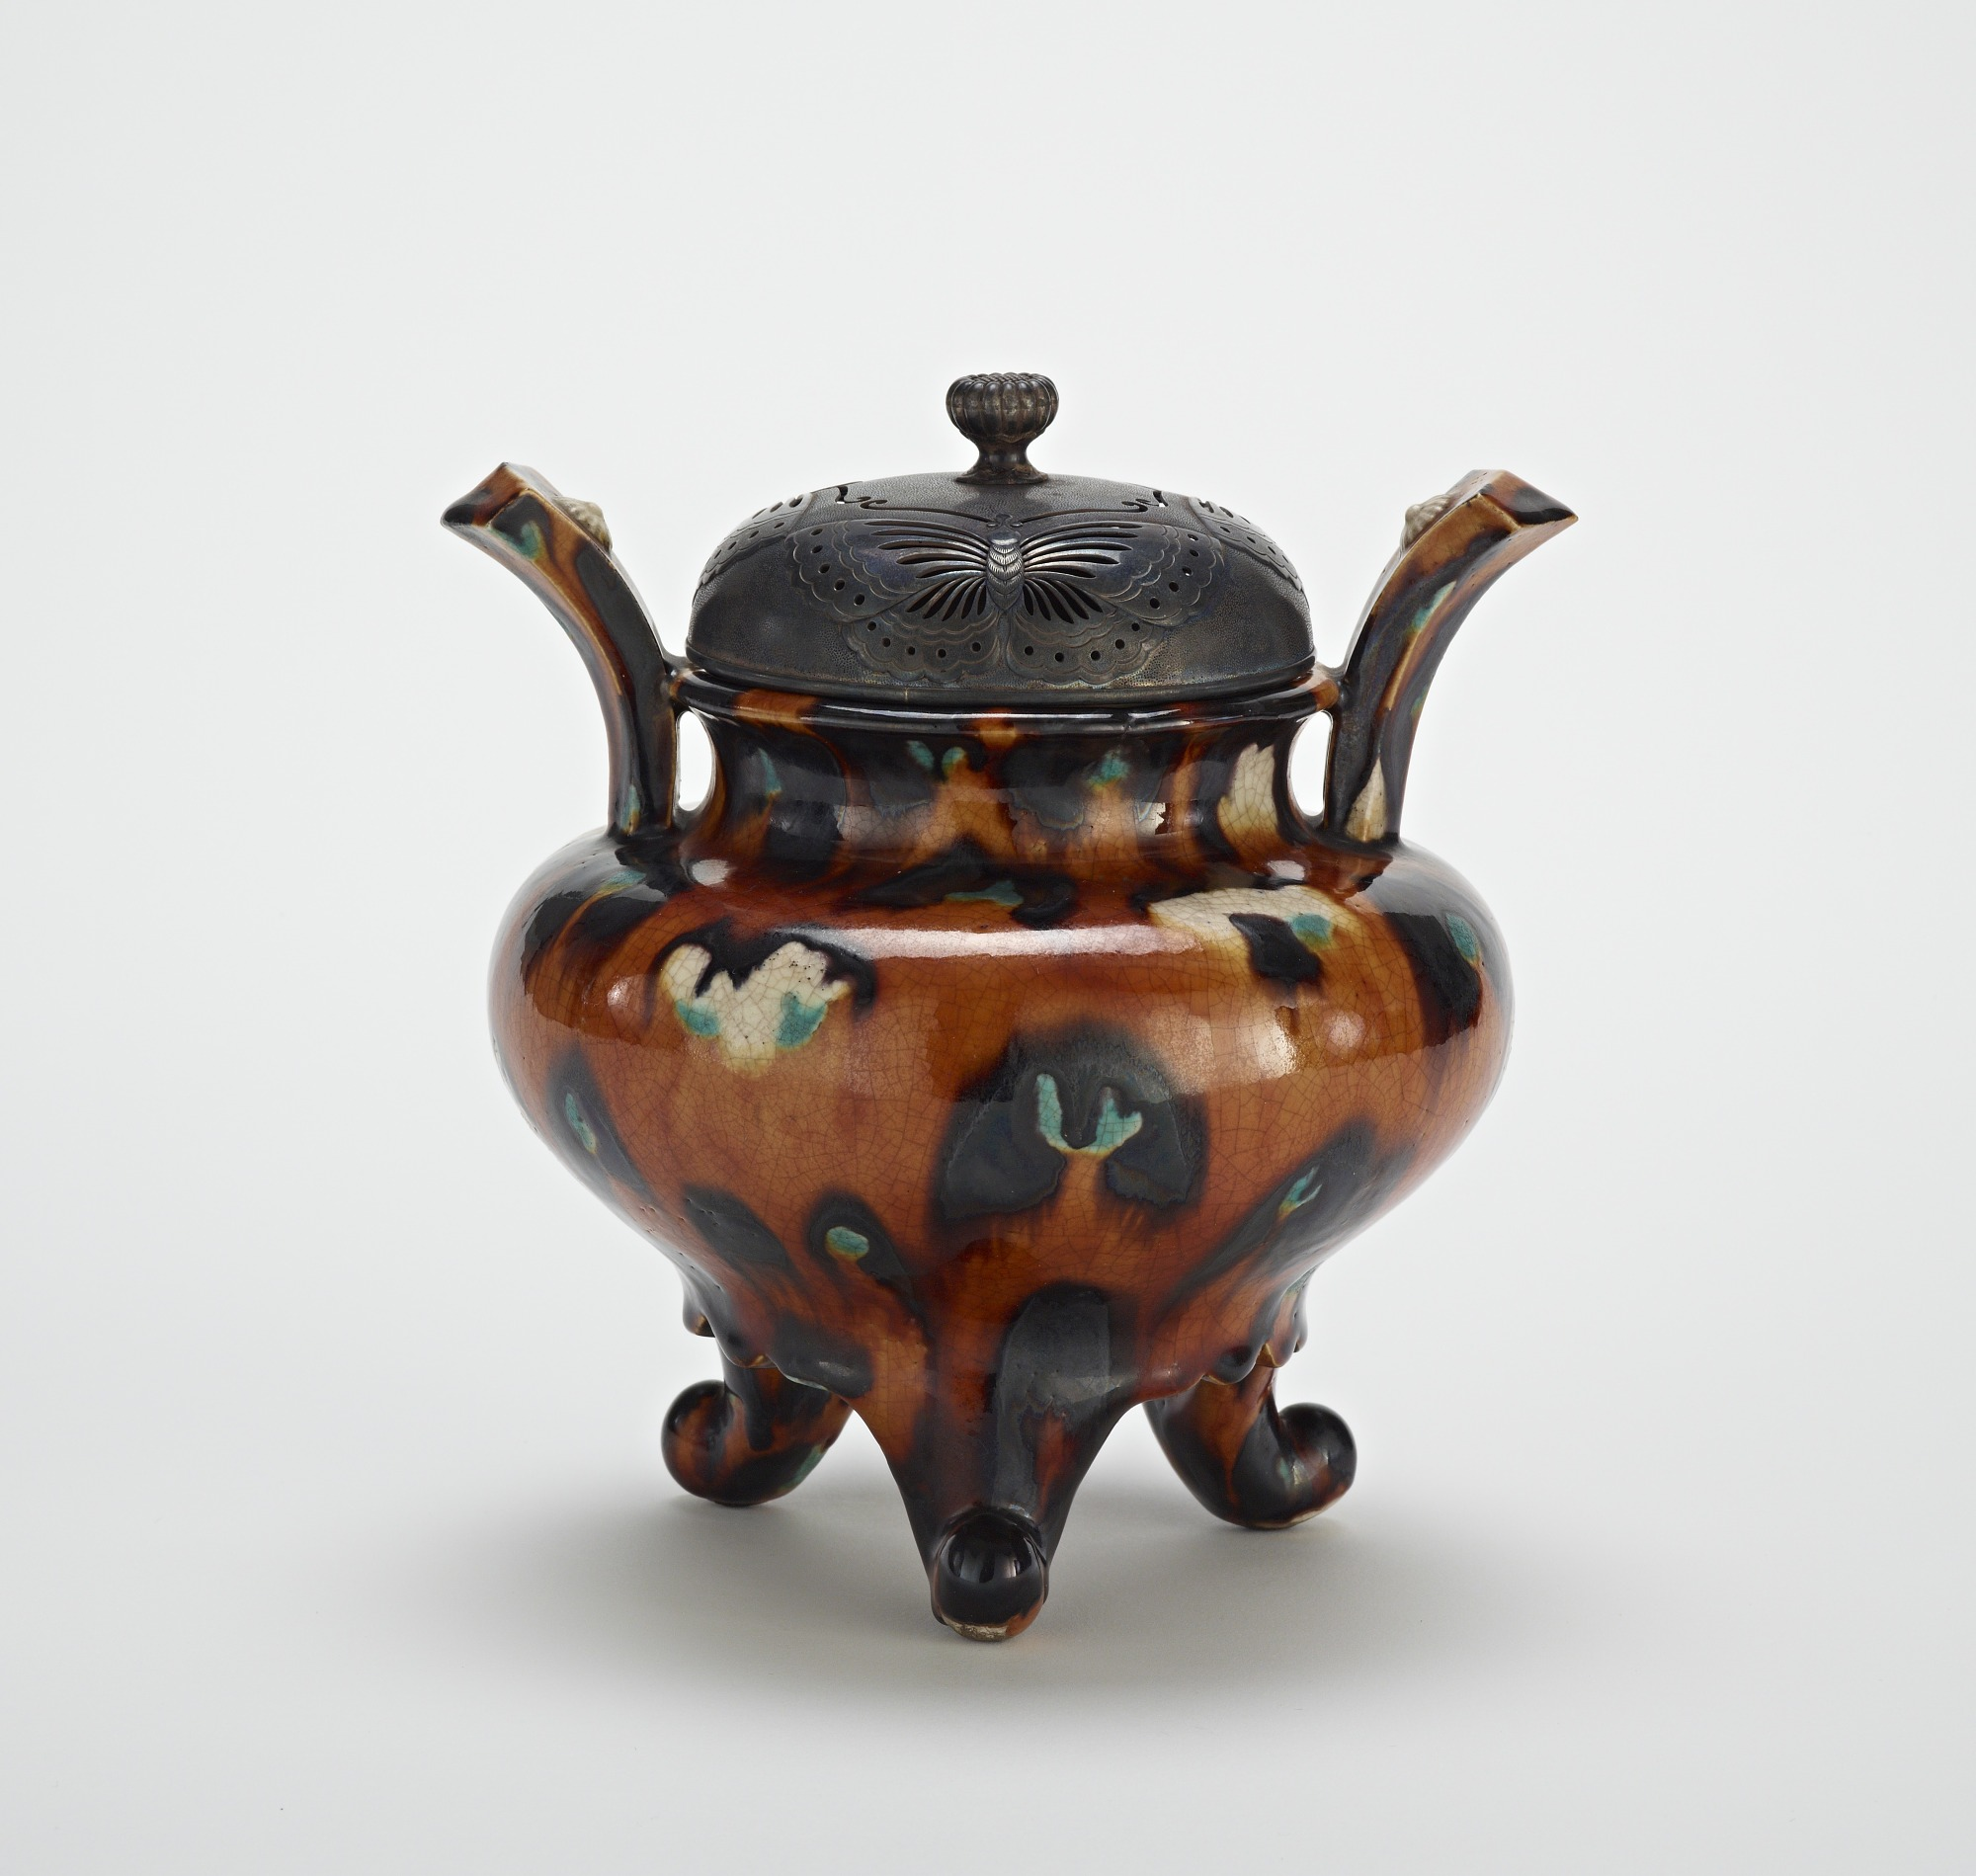 Hirasa ware incense burner